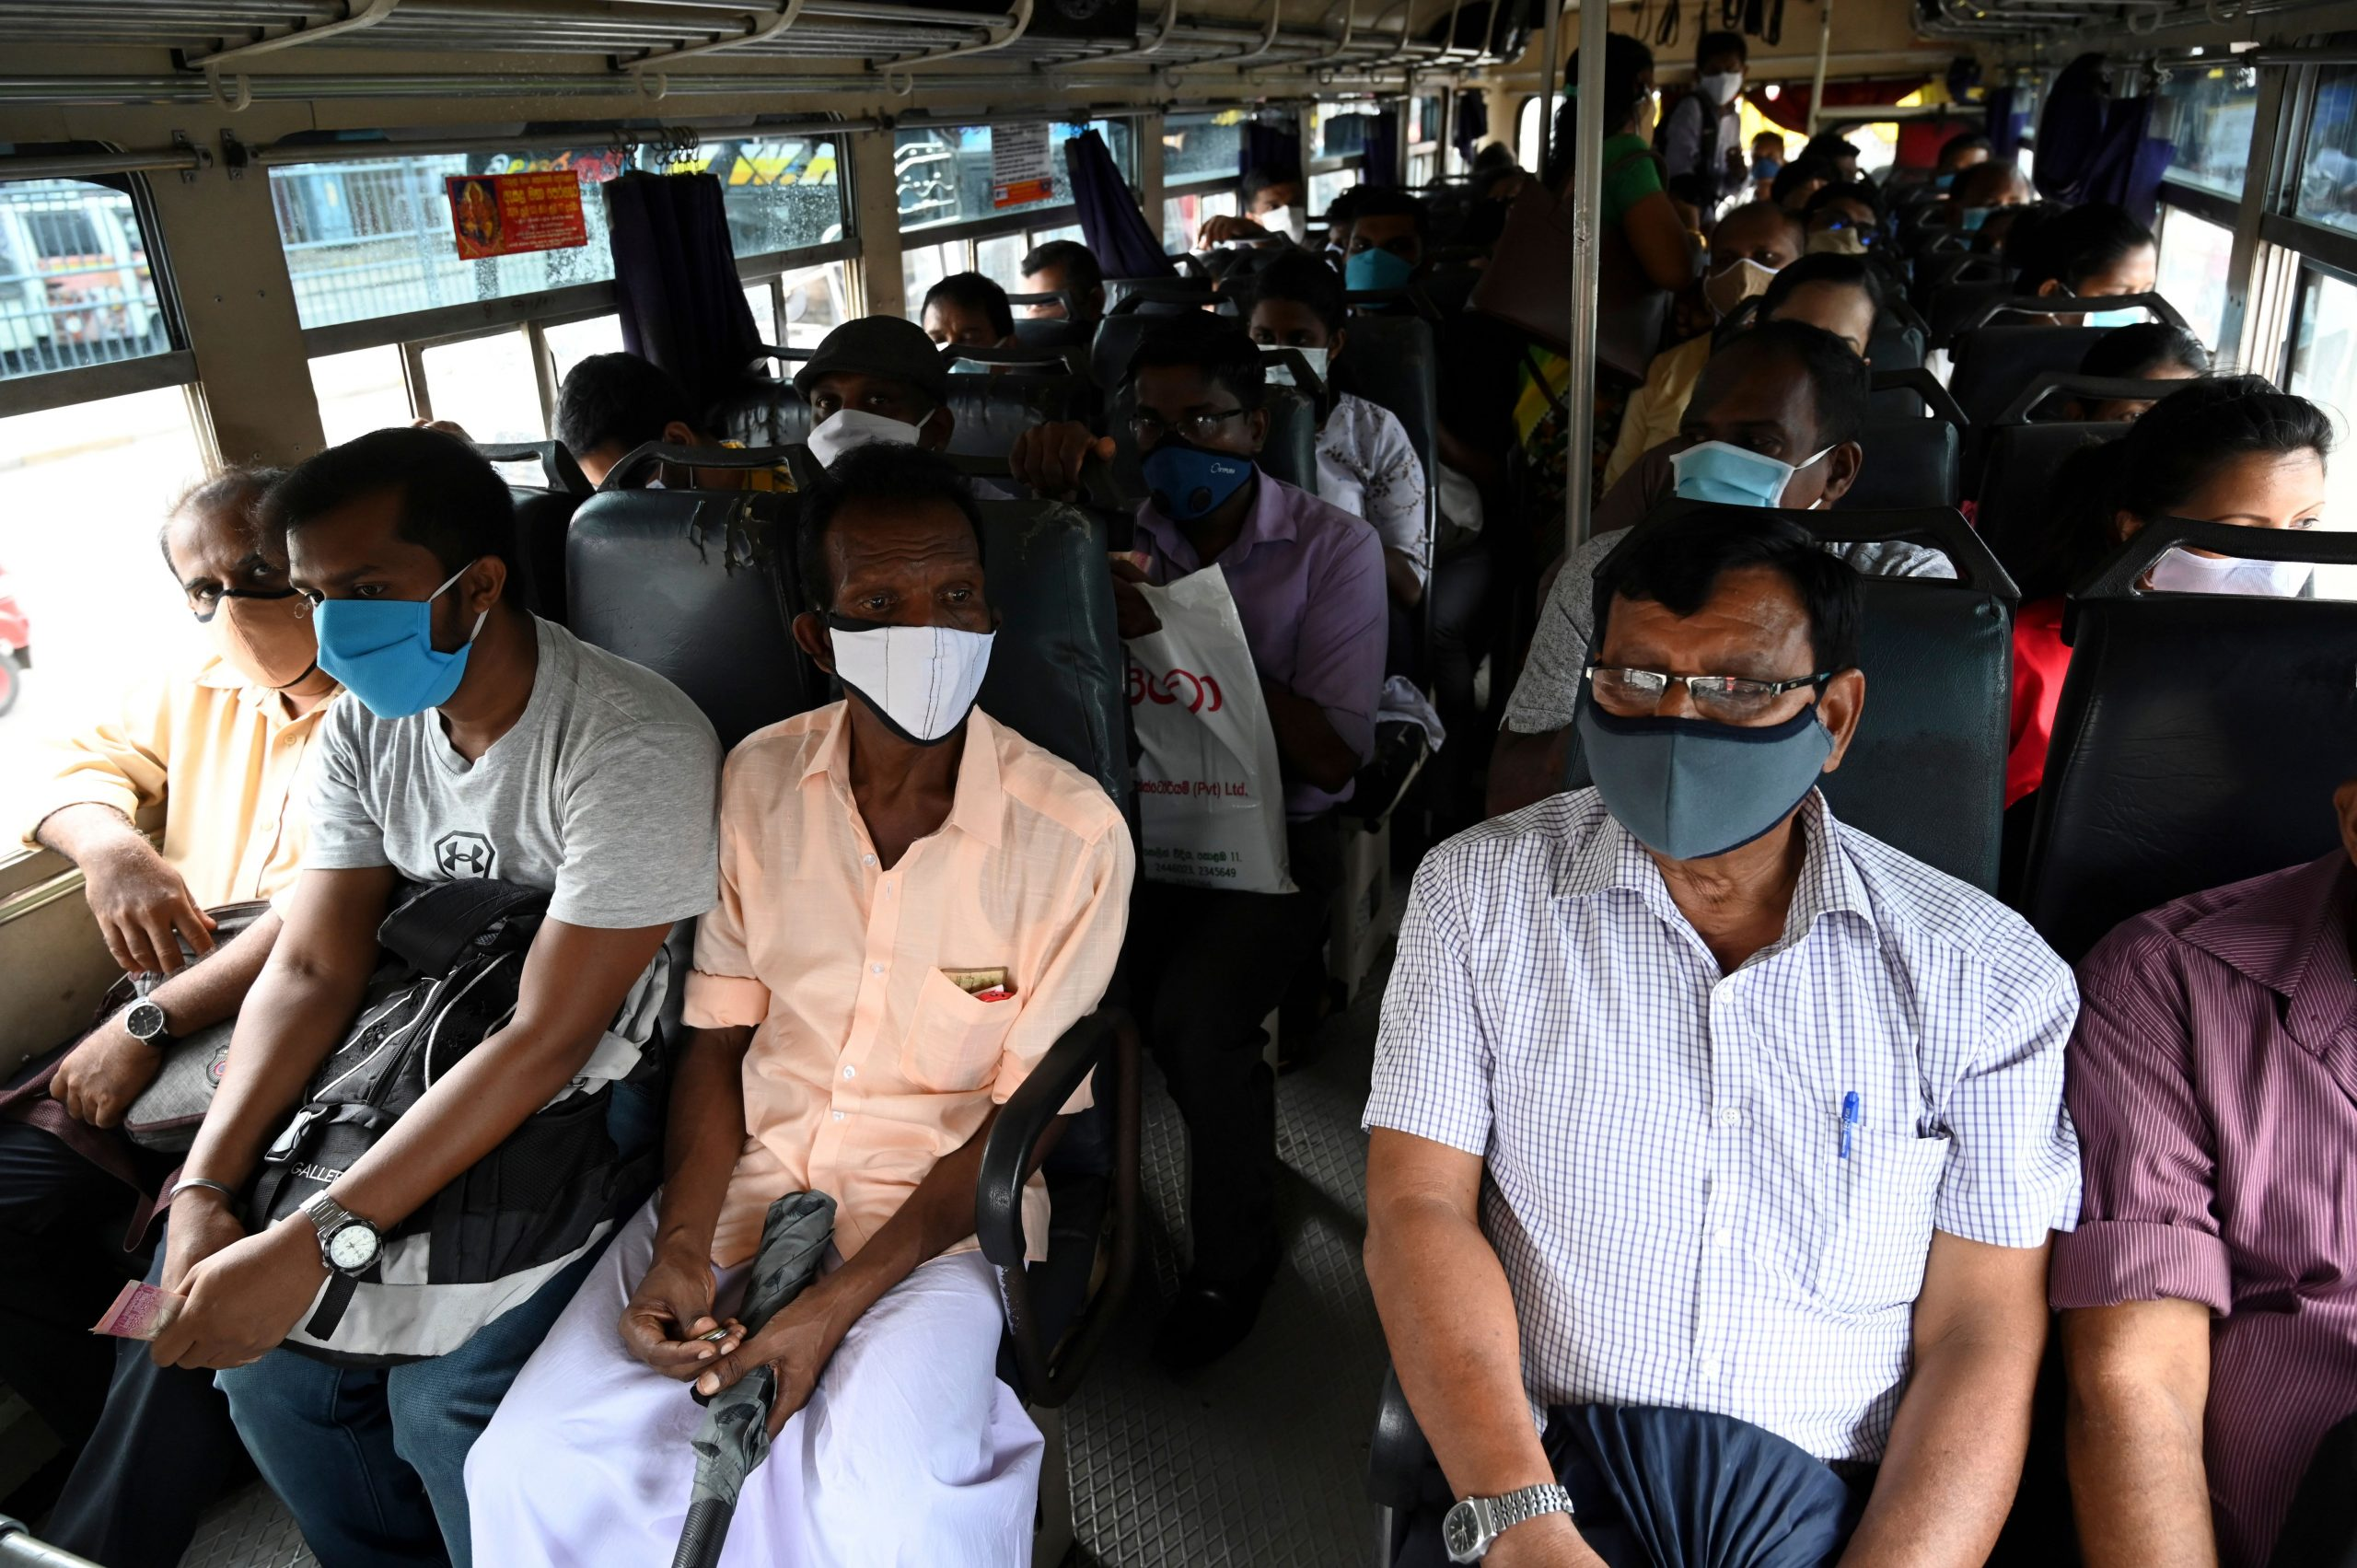 Commuters wearing facemasks travel in a bus in Colombo on May 26, 2020 as authorities eased the 24-hour curfew as a preventive measure against the spread of the COVID-19 coronavirus after 67 days. - The 24-hour curfew first imposed on March 20 was eased on May 26 and turned into a night-time curfew as the authorities announced that the spread of the coronavirus was largely under control. (Photo by Ishara S. KODIKARA / AFP) (Photo by ISHARA S. KODIKARA/AFP via Getty Images)